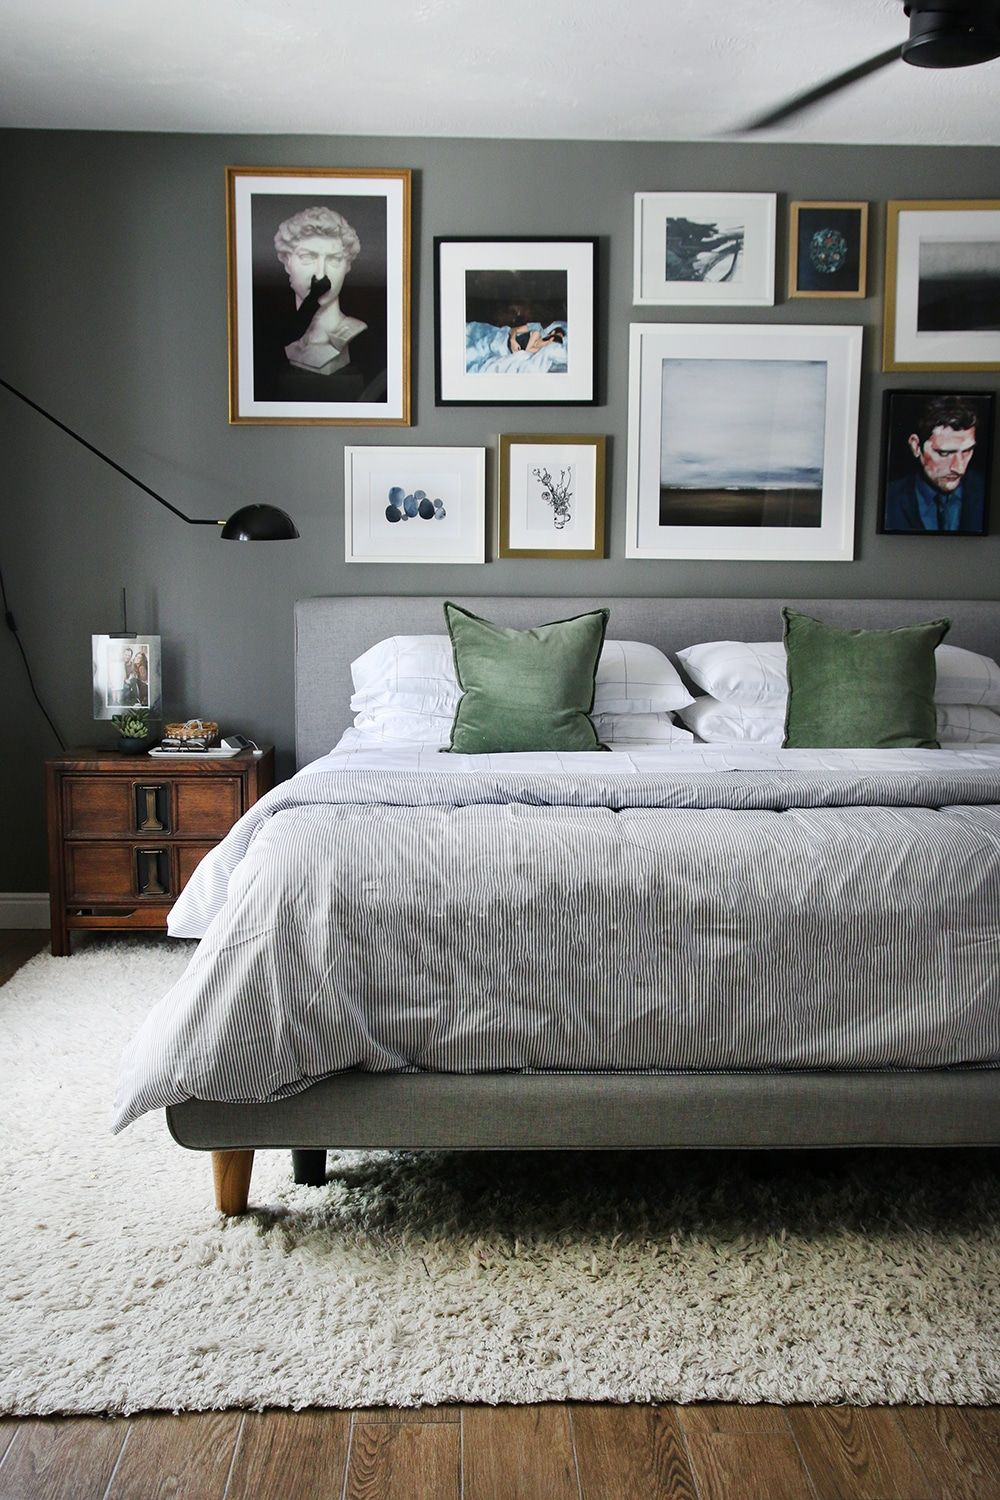 The 6 Year Evolution of Our Bedroom #graybedroomwithpopofcolor